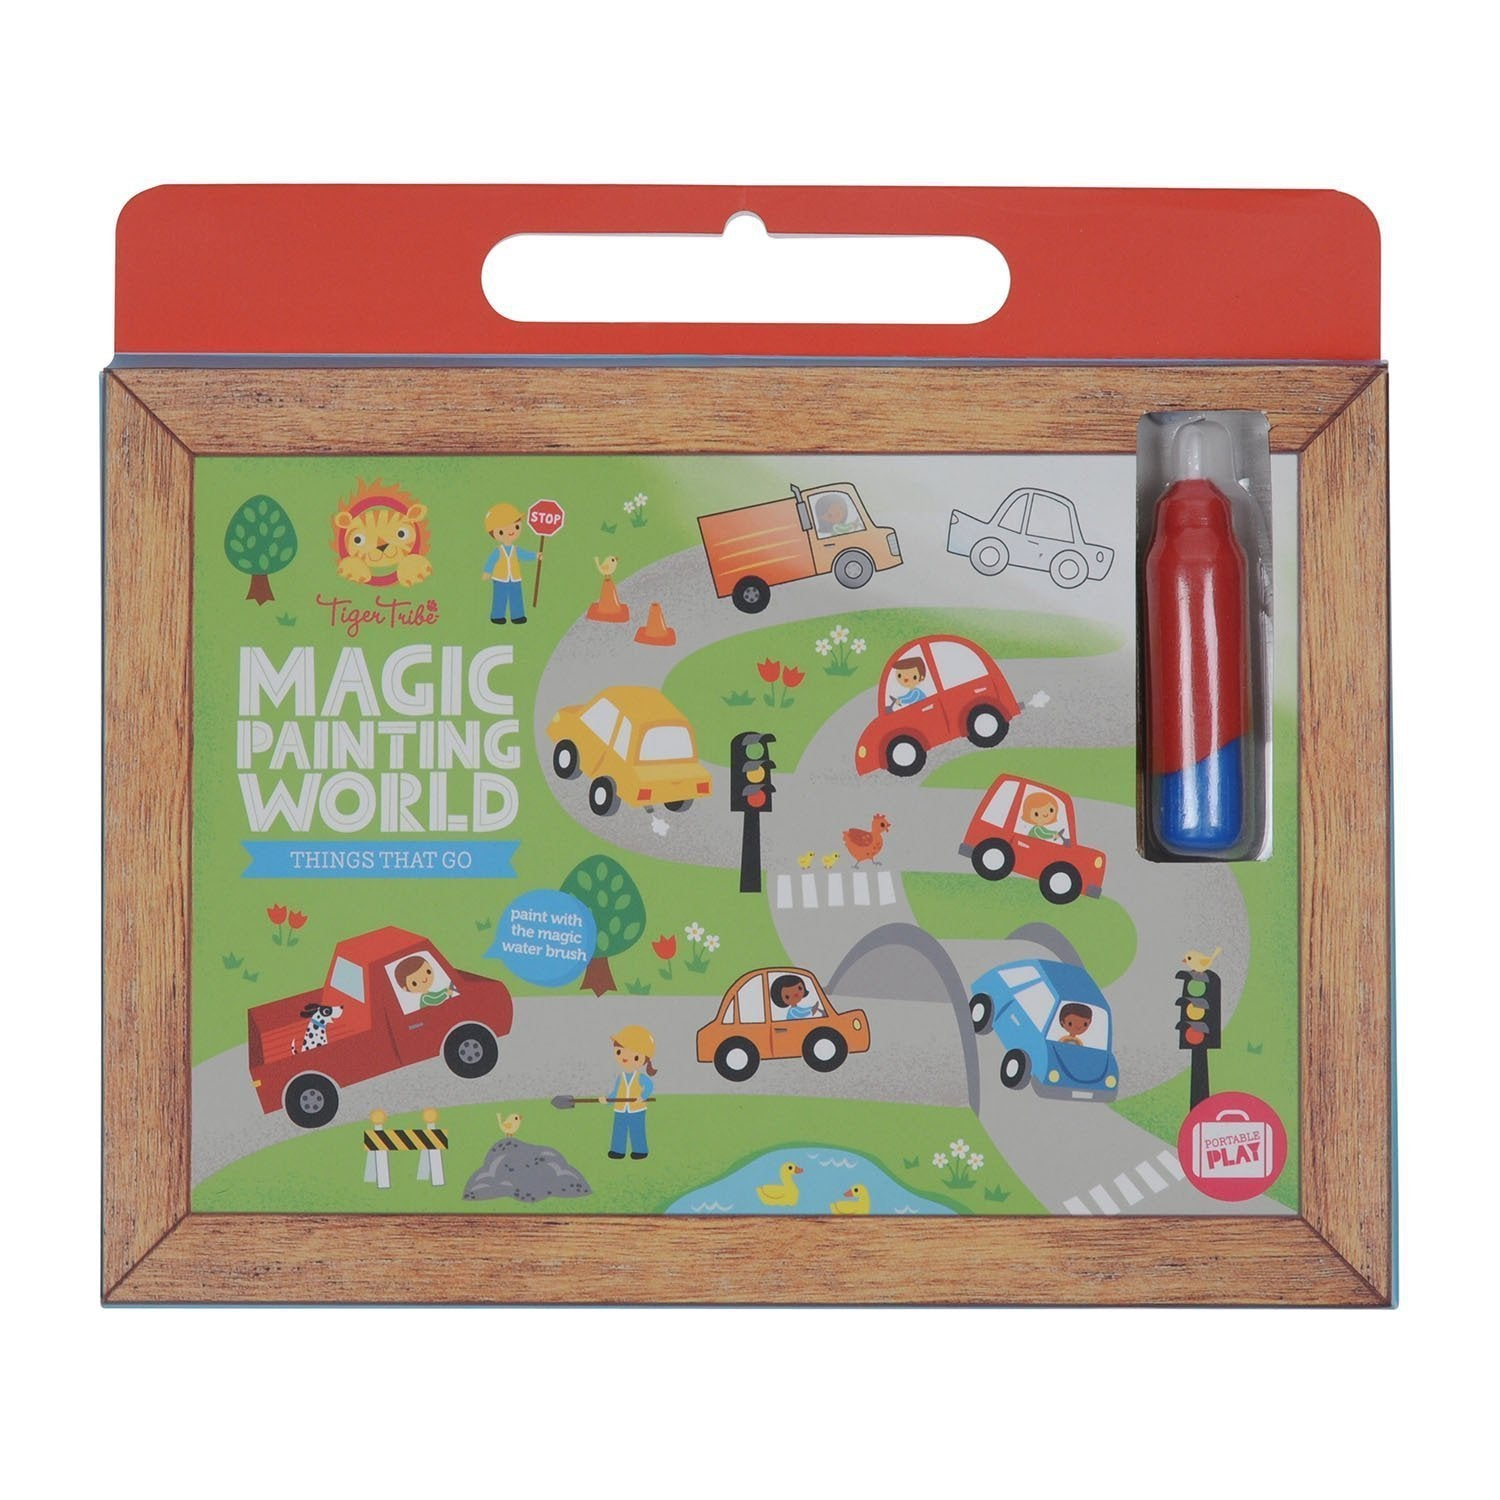 Magic Painting World - Things that Go - Tiger Tribe - Hugs For Kids